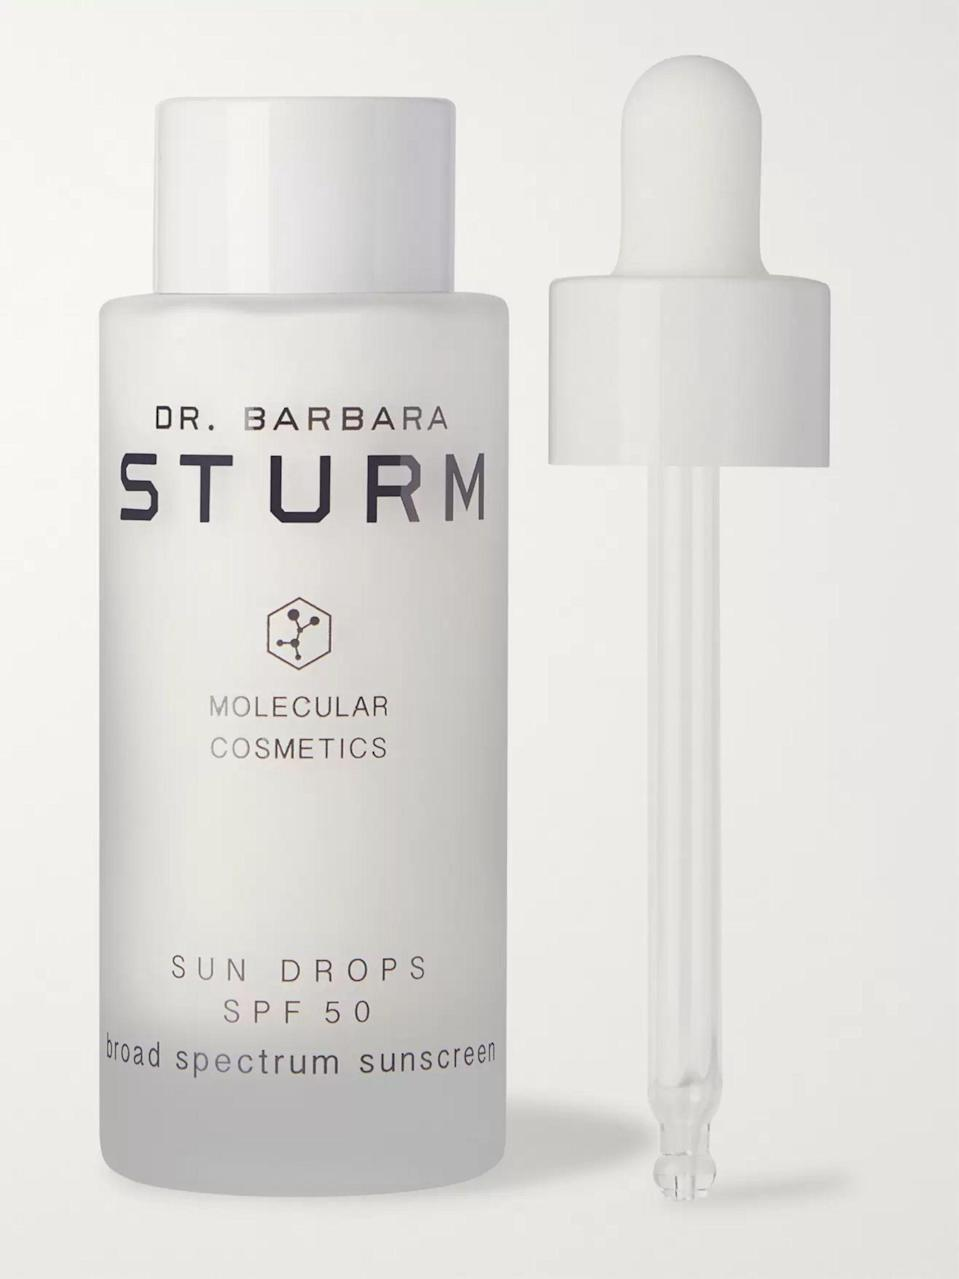 """<p><strong>Dr. Barbara Sturm</strong></p><p>mrporter.com</p><p><strong>$145.00</strong></p><p><a href=""""https://go.redirectingat.com?id=74968X1596630&url=https%3A%2F%2Fwww.mrporter.com%2Fen-us%2Fmens%2Fproduct%2Fdr-barbara-sturm%2Fgrooming%2Fsuncare%2Fsun-drops-spf50-broad-spectrum-sunscreen-30ml%2F2307389542101408&sref=https%3A%2F%2Fwww.townandcountrymag.com%2Fstyle%2Fg36729805%2Fthe-weekly-covet-june-18-2021%2F"""" rel=""""nofollow noopener"""" target=""""_blank"""" data-ylk=""""slk:Shop Now"""" class=""""link rapid-noclick-resp"""">Shop Now</a></p><p>""""For dads who love to spend all of their free time playing tennis or golf, give the invaluable gift of sun protection. Dr. Barbara Sturm's luxe version also does double duty by fighting fine lines and wrinkles.""""—<em>Leena Kim, Associate Editor</em></p>"""